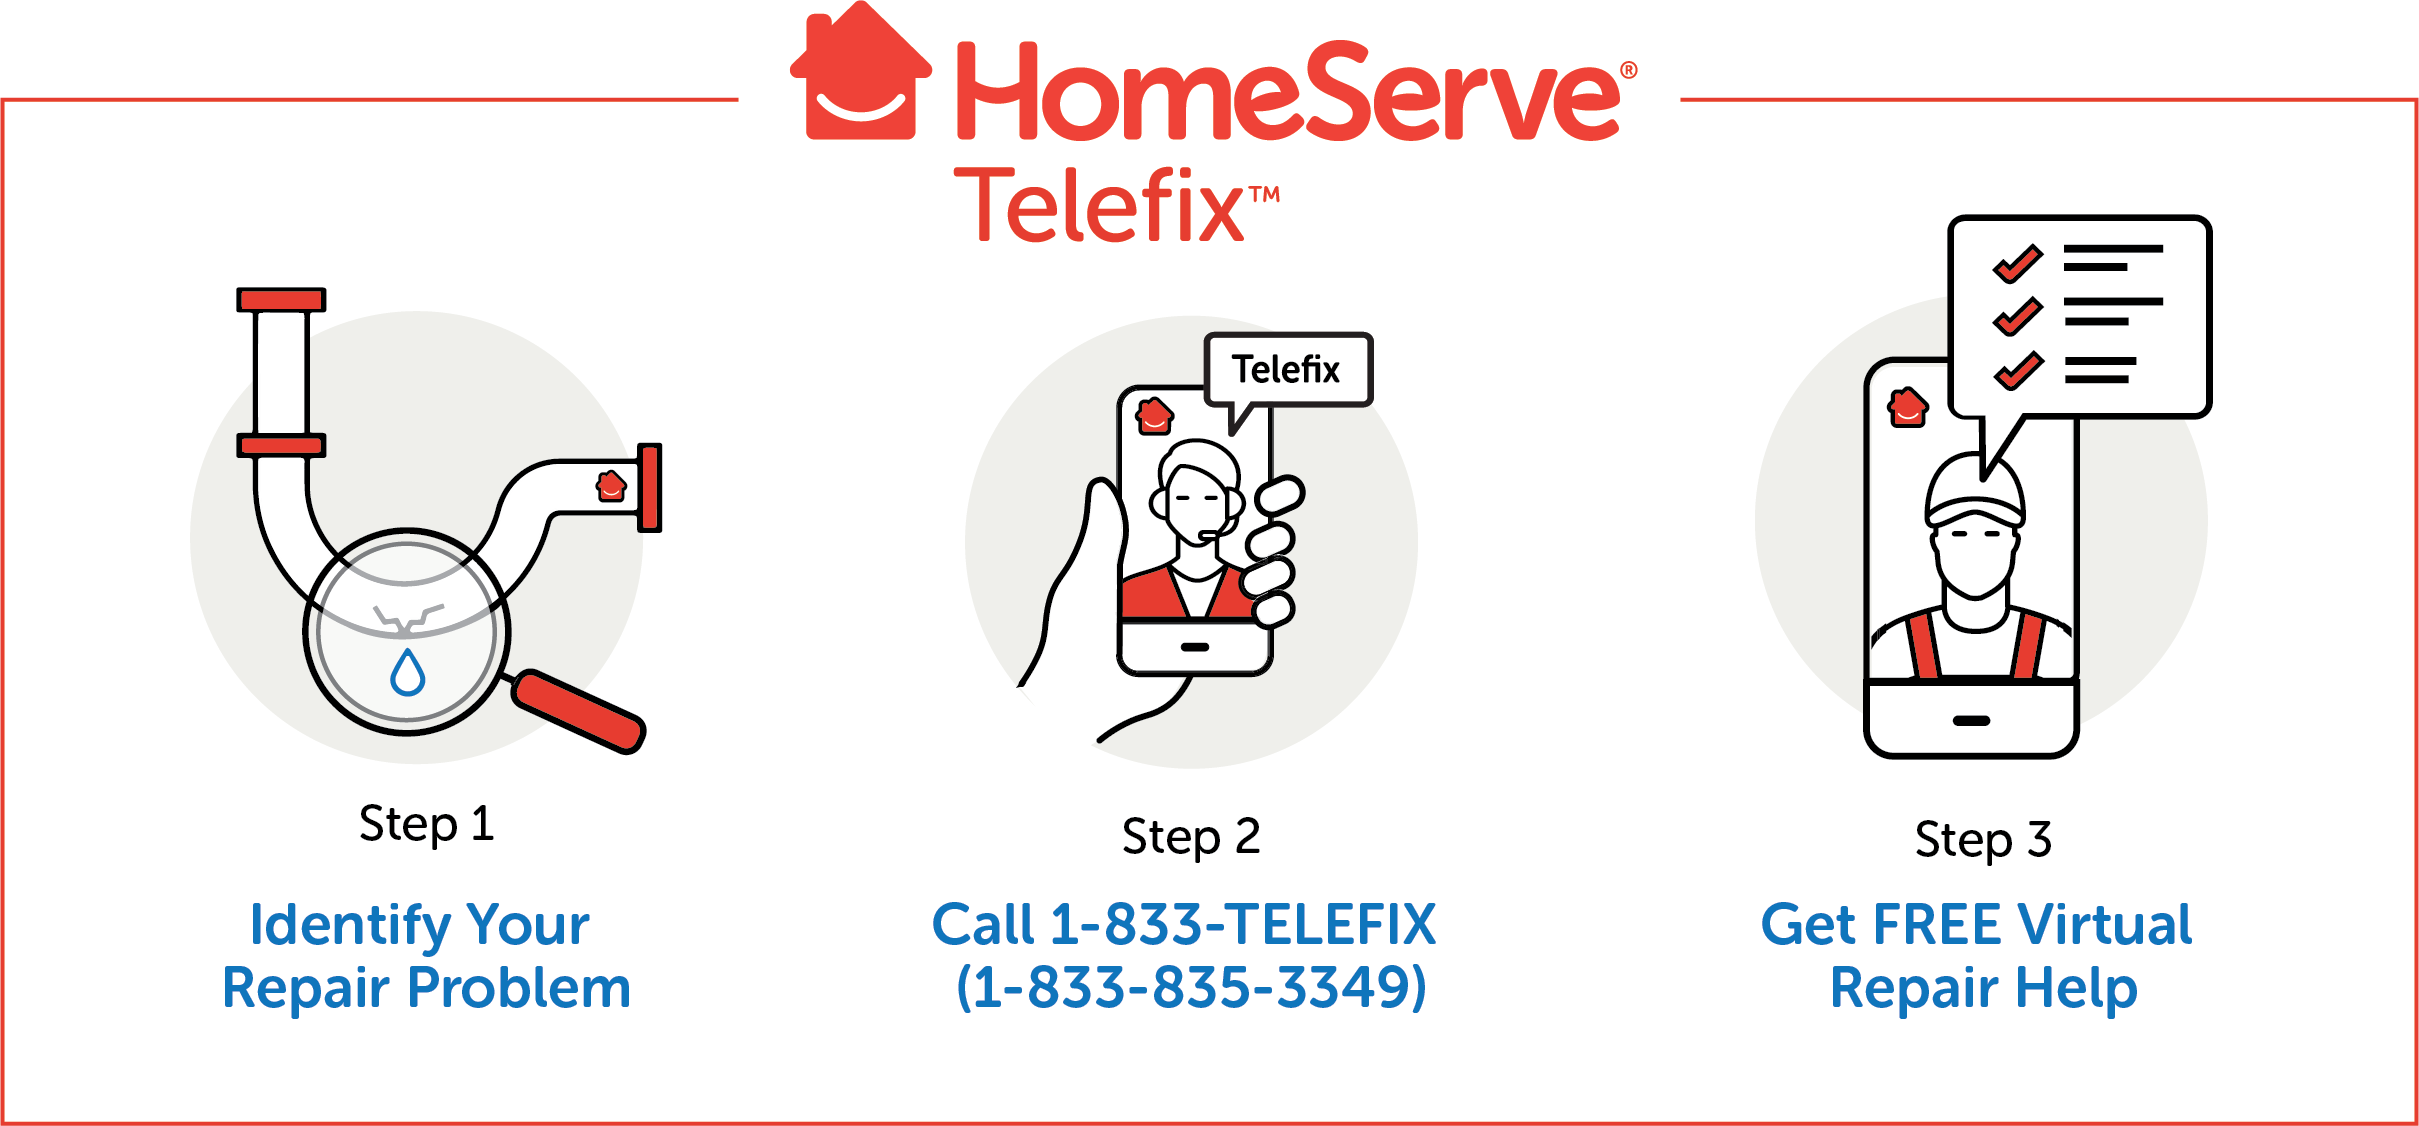 HomeServe Telefix 3-Step Process